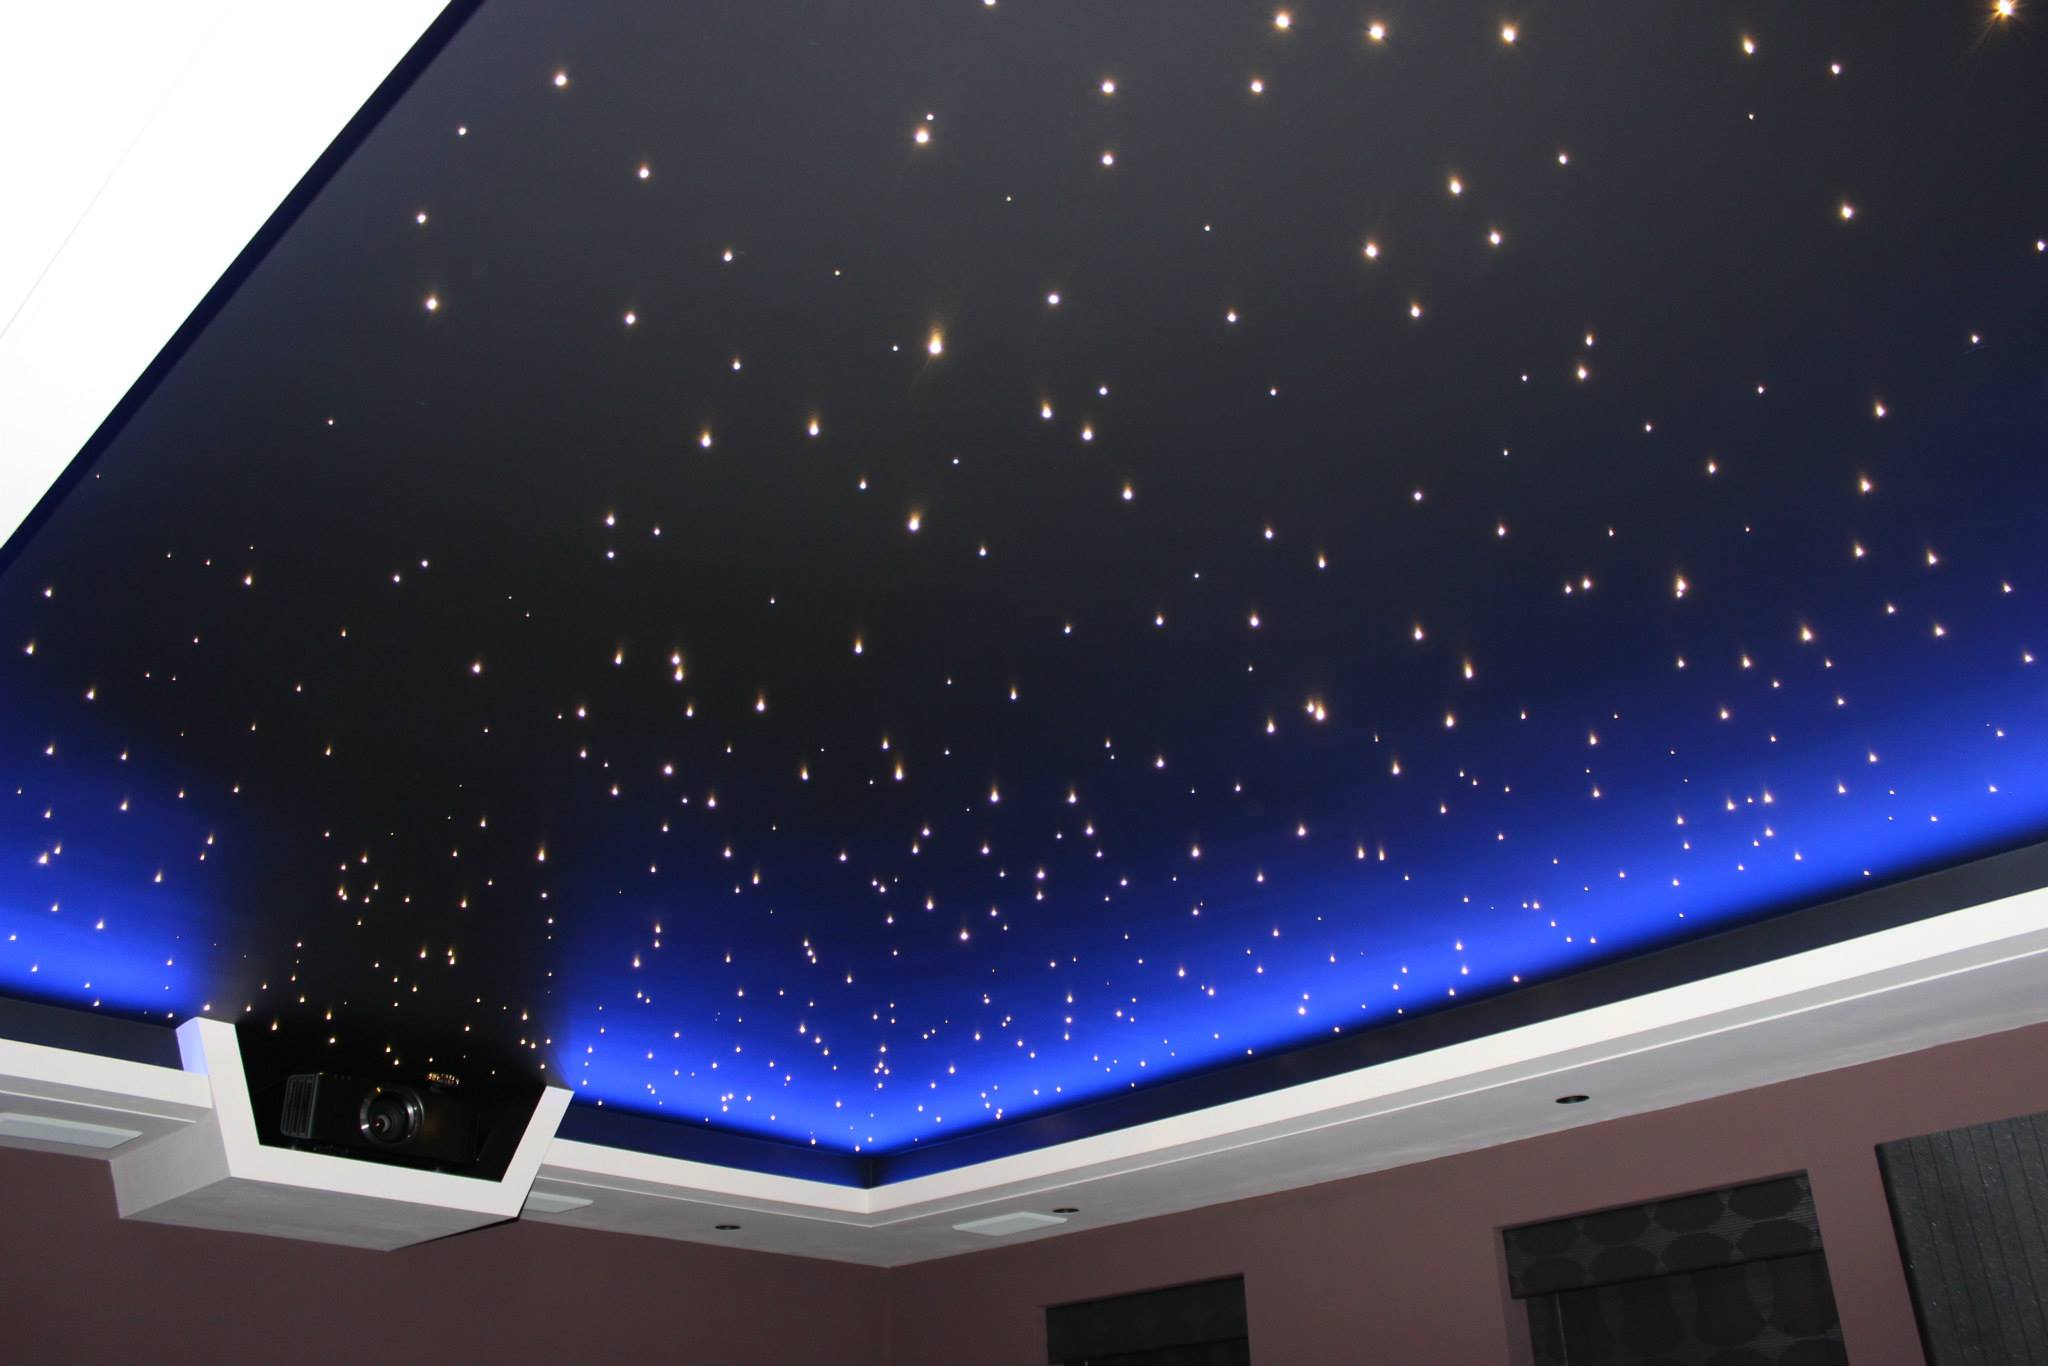 star light ceiling projector enjoy star gazing in your